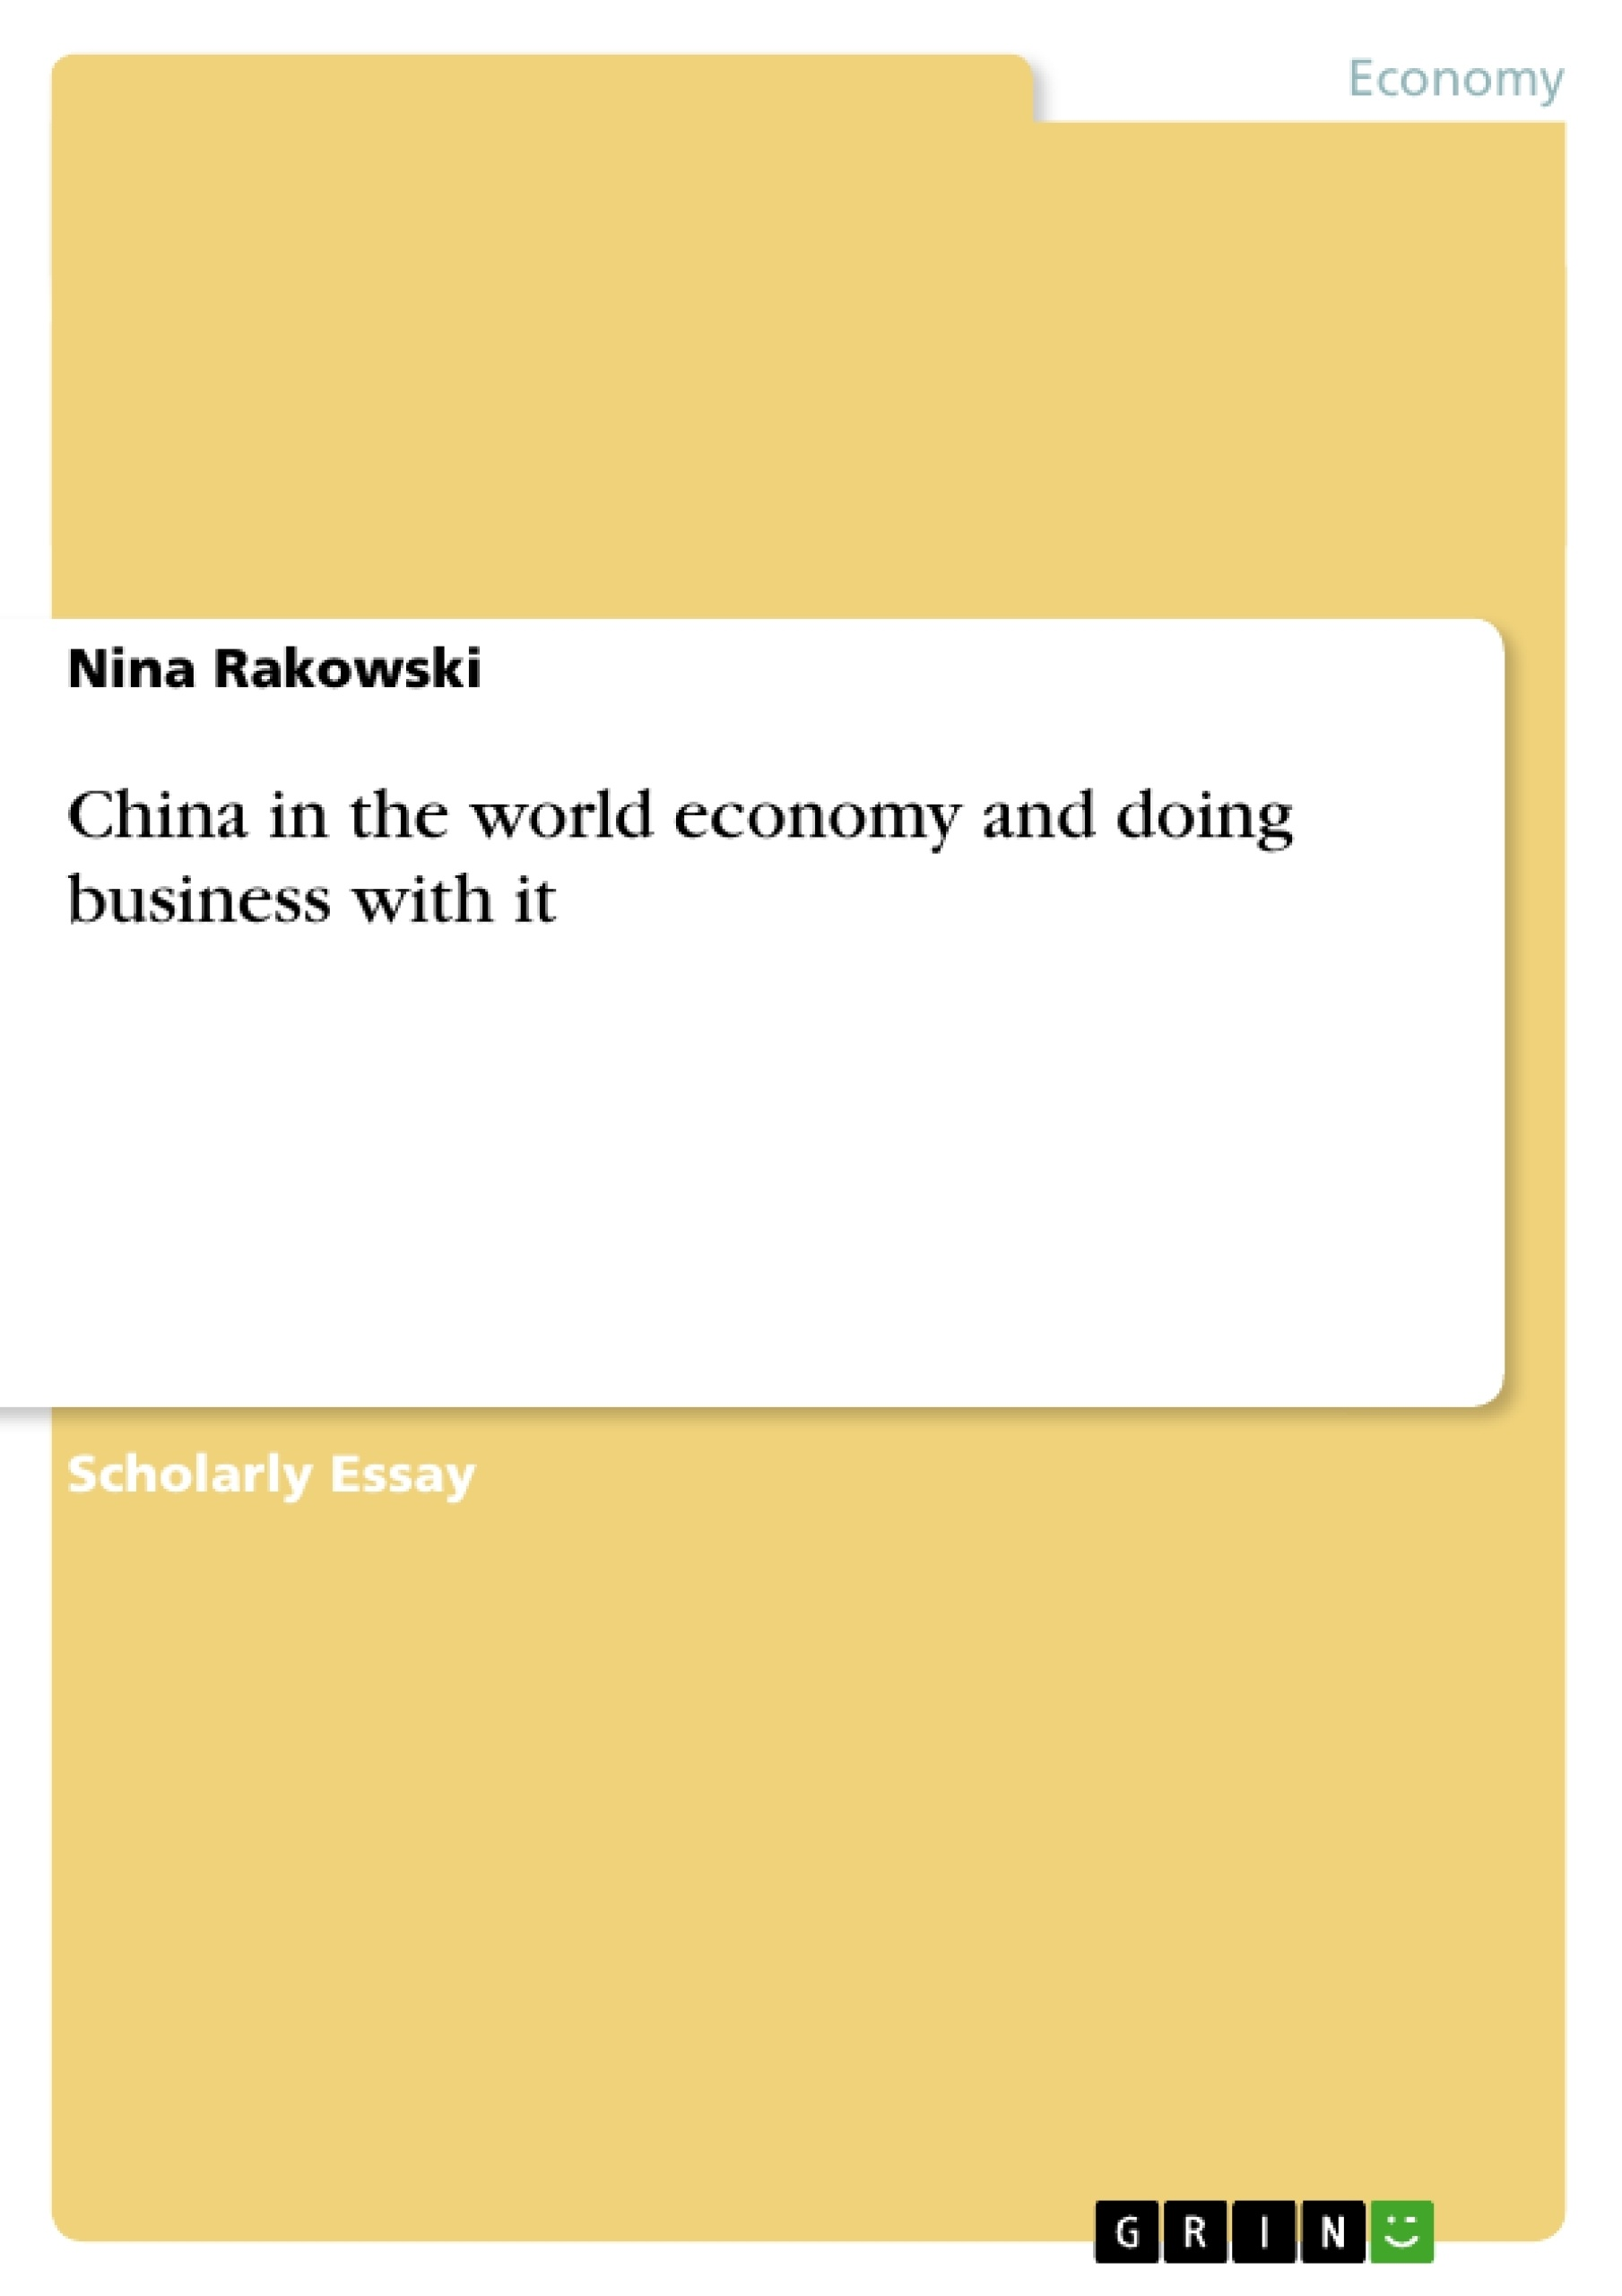 Title: China in the world economy and doing business with it